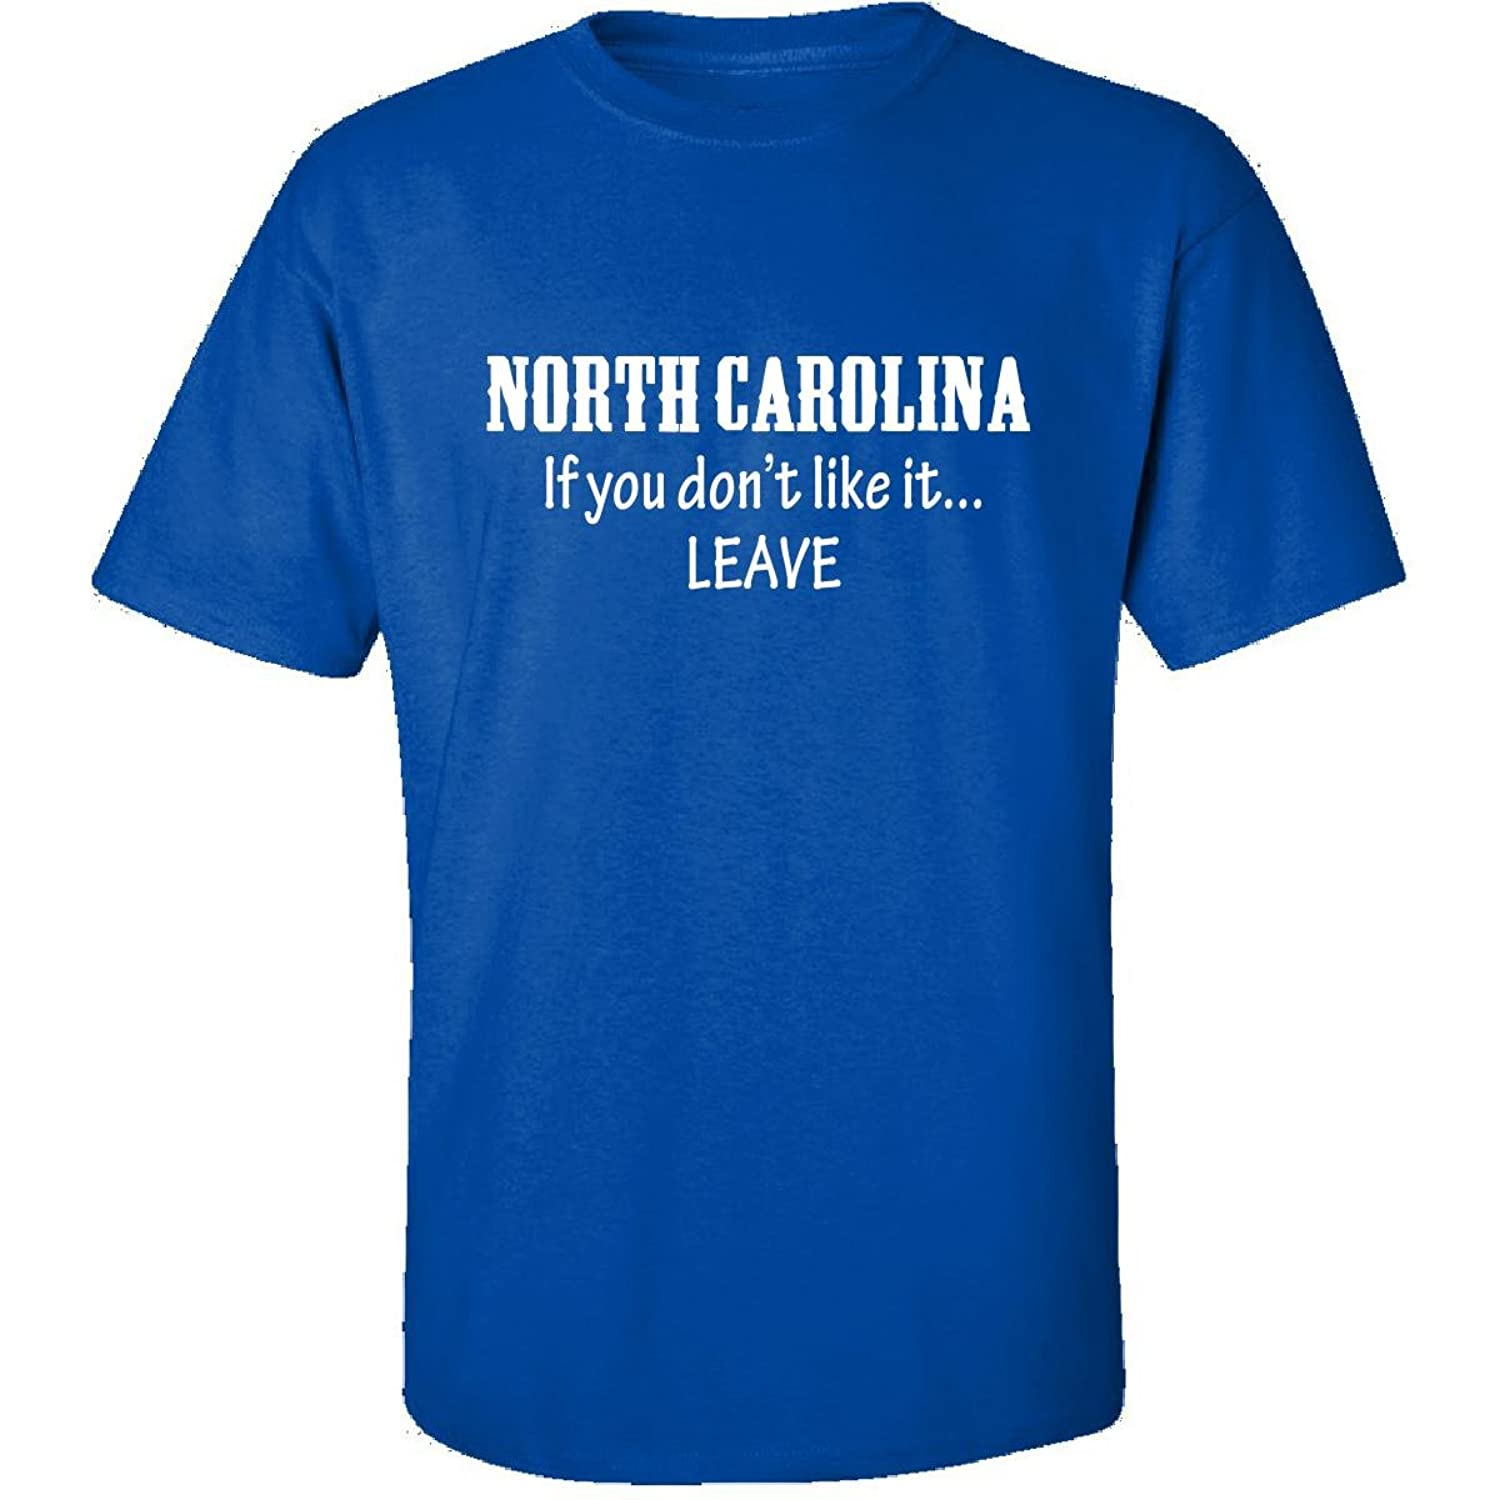 North Carolina If You Dont Like It Leave Proud State - Adult Shirt